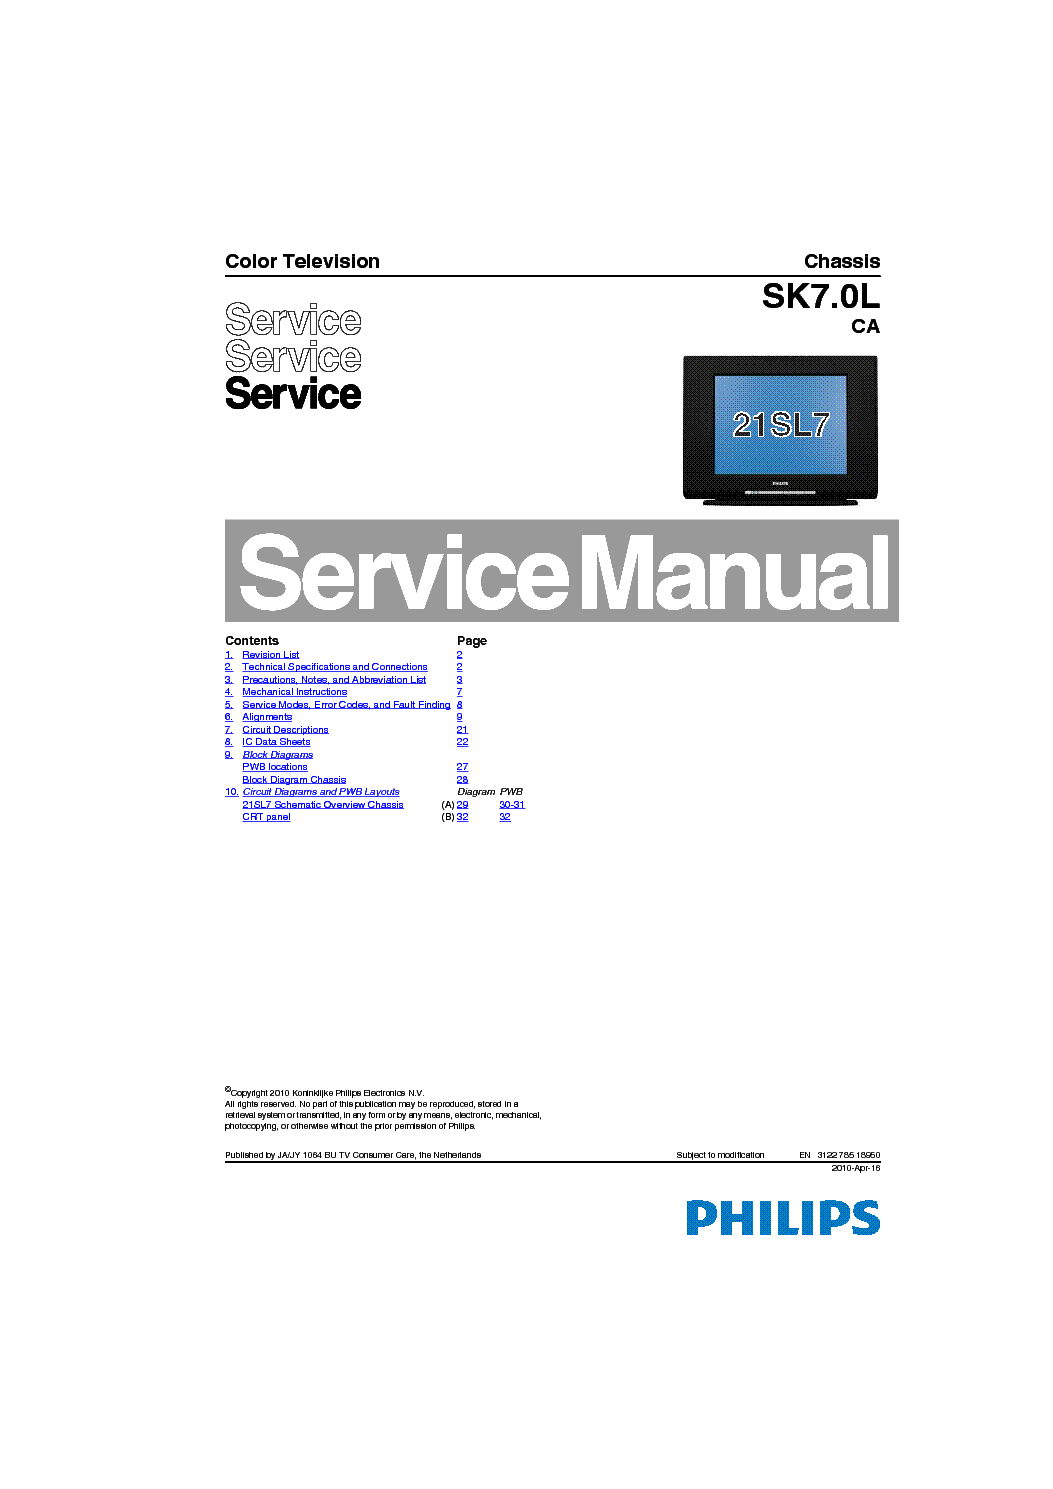 PHILIPS SK7.0L CA CHASSIS TV SM Service Manual download